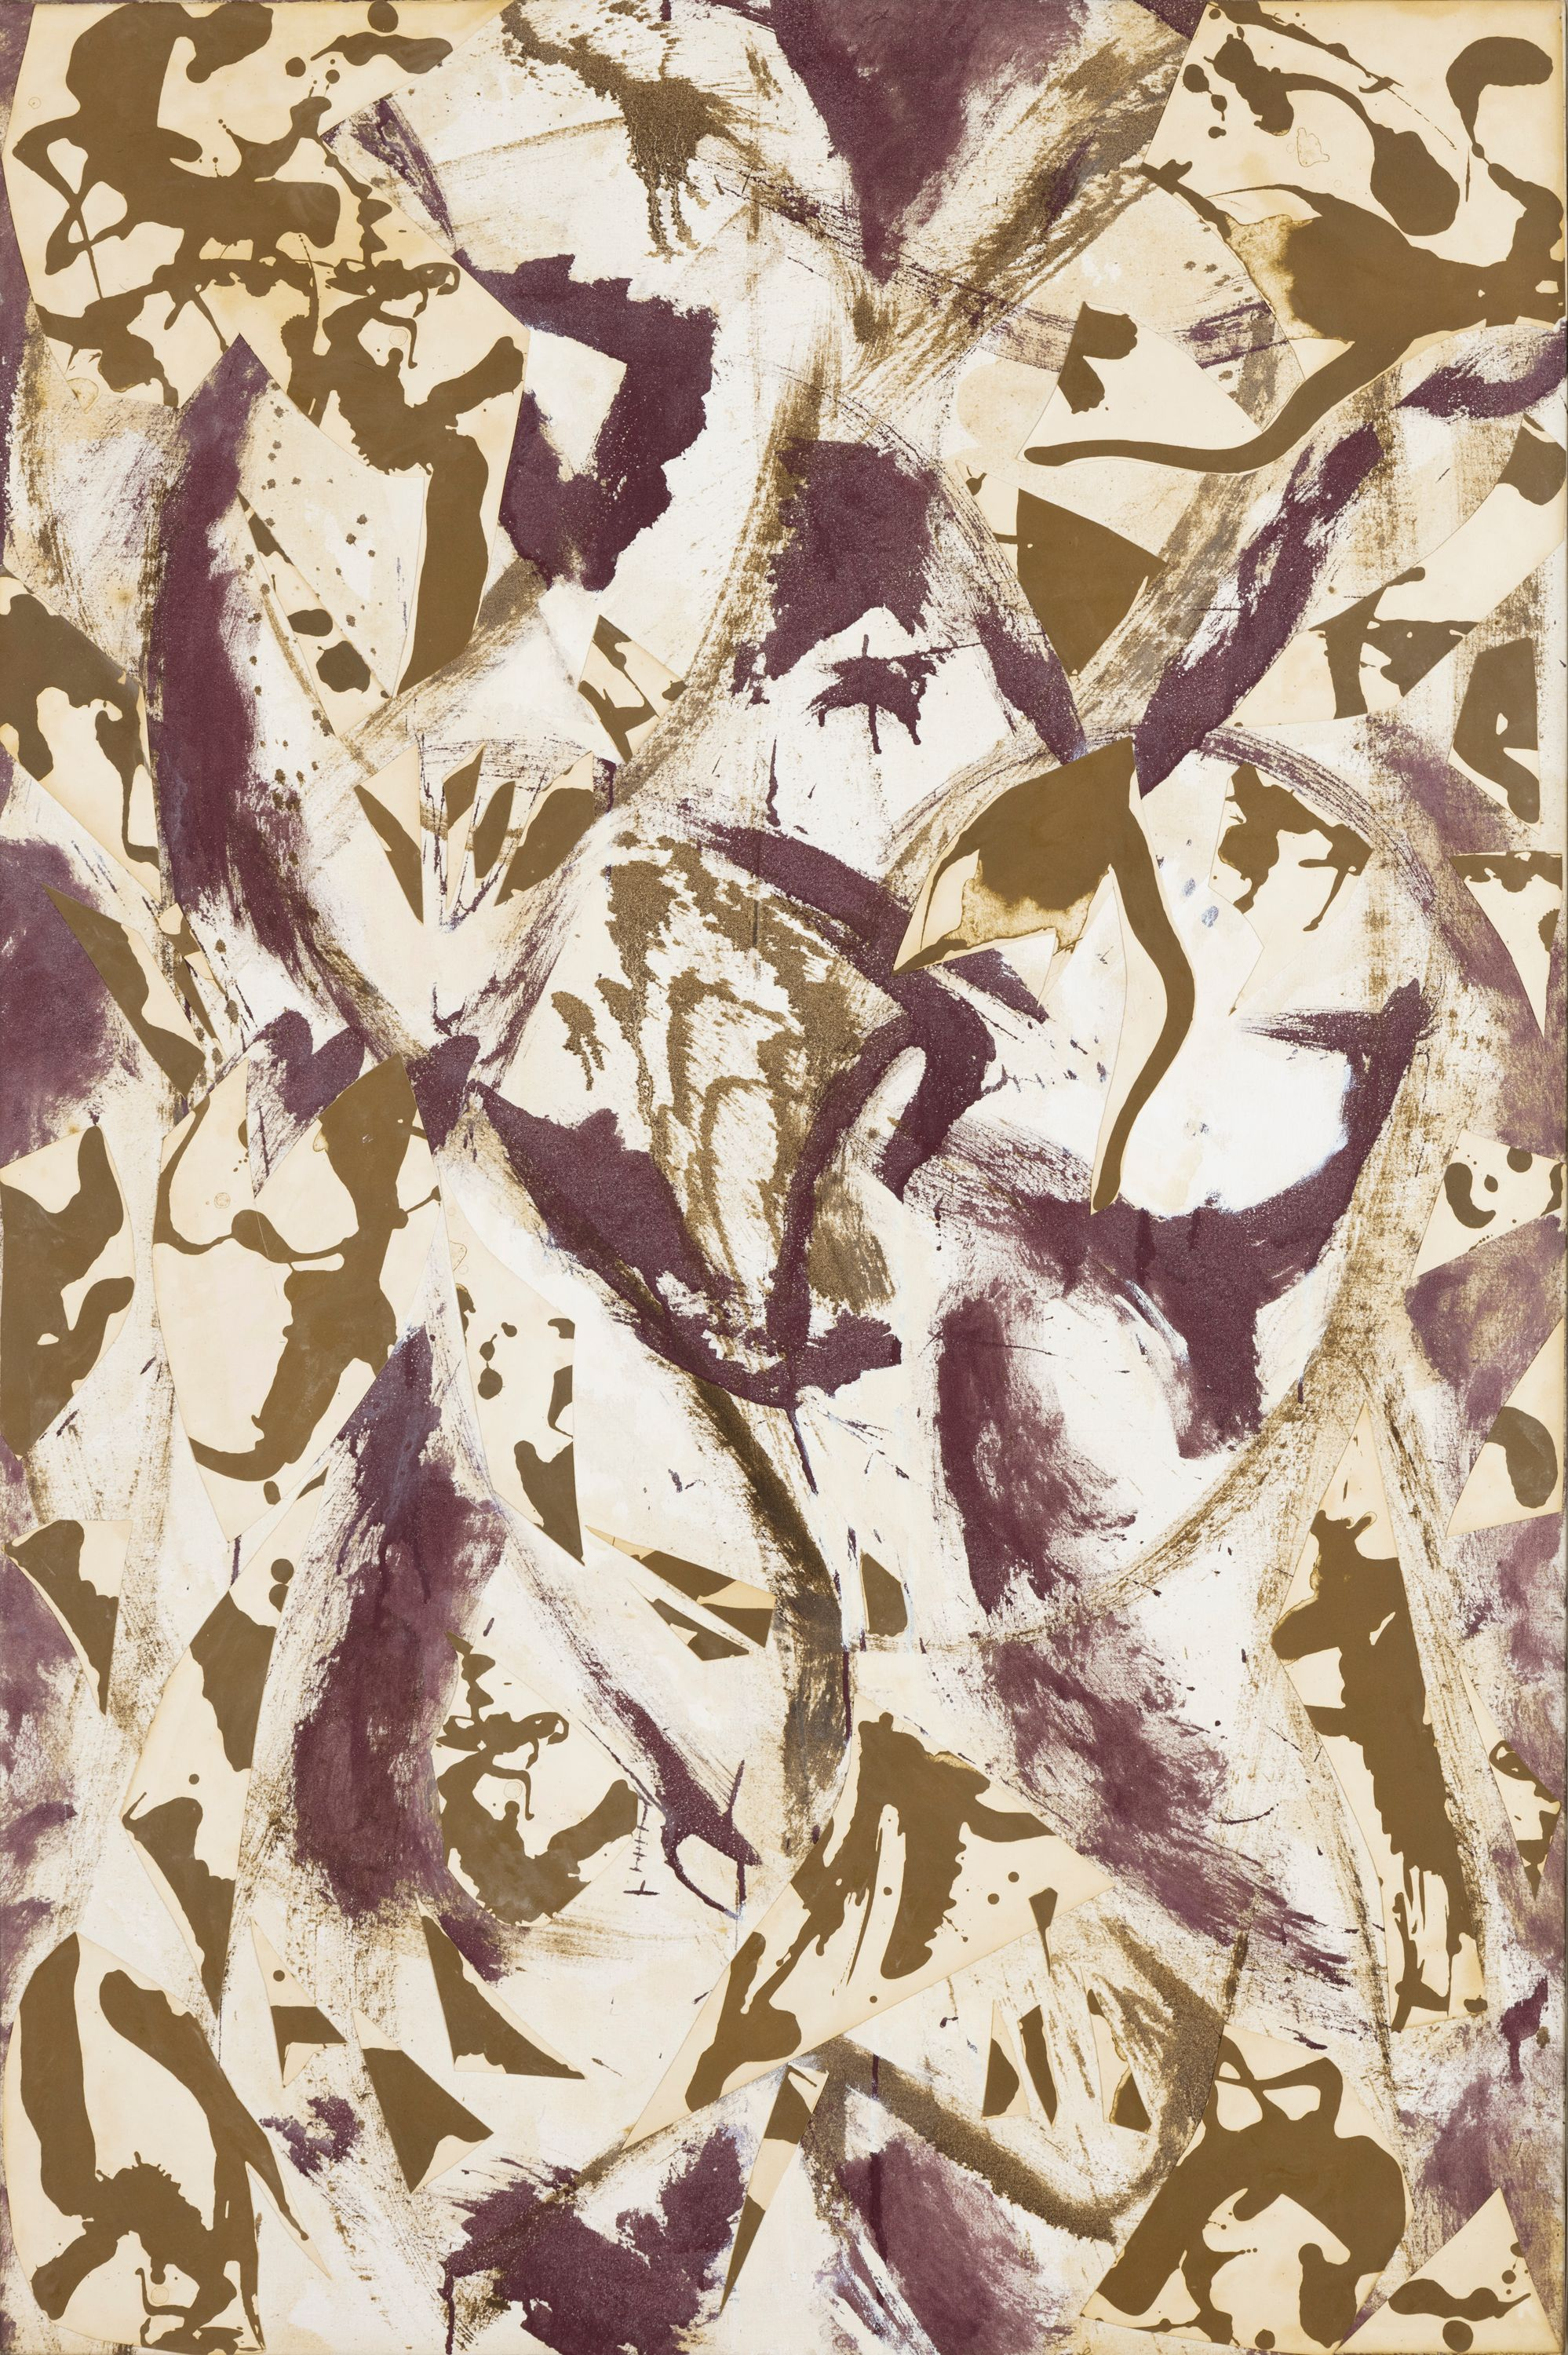 Lee Krasner, The Farthest Point, 1981 Kasmin Galery